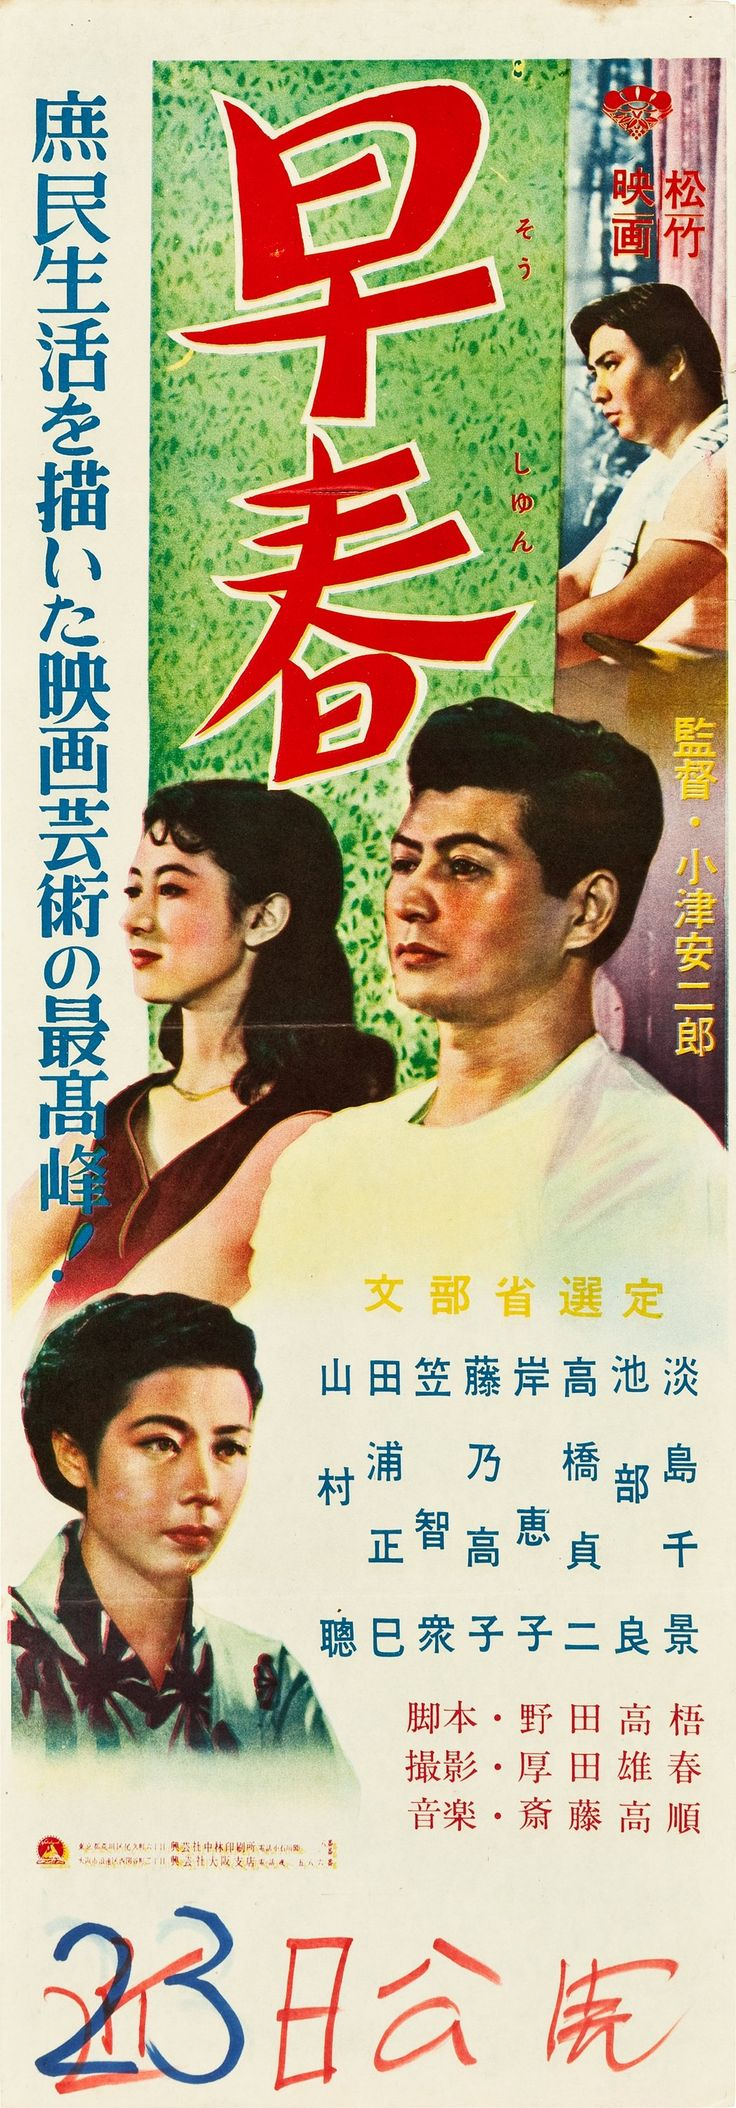 41 best Japanese movies and series images on Pinterest | Film ...